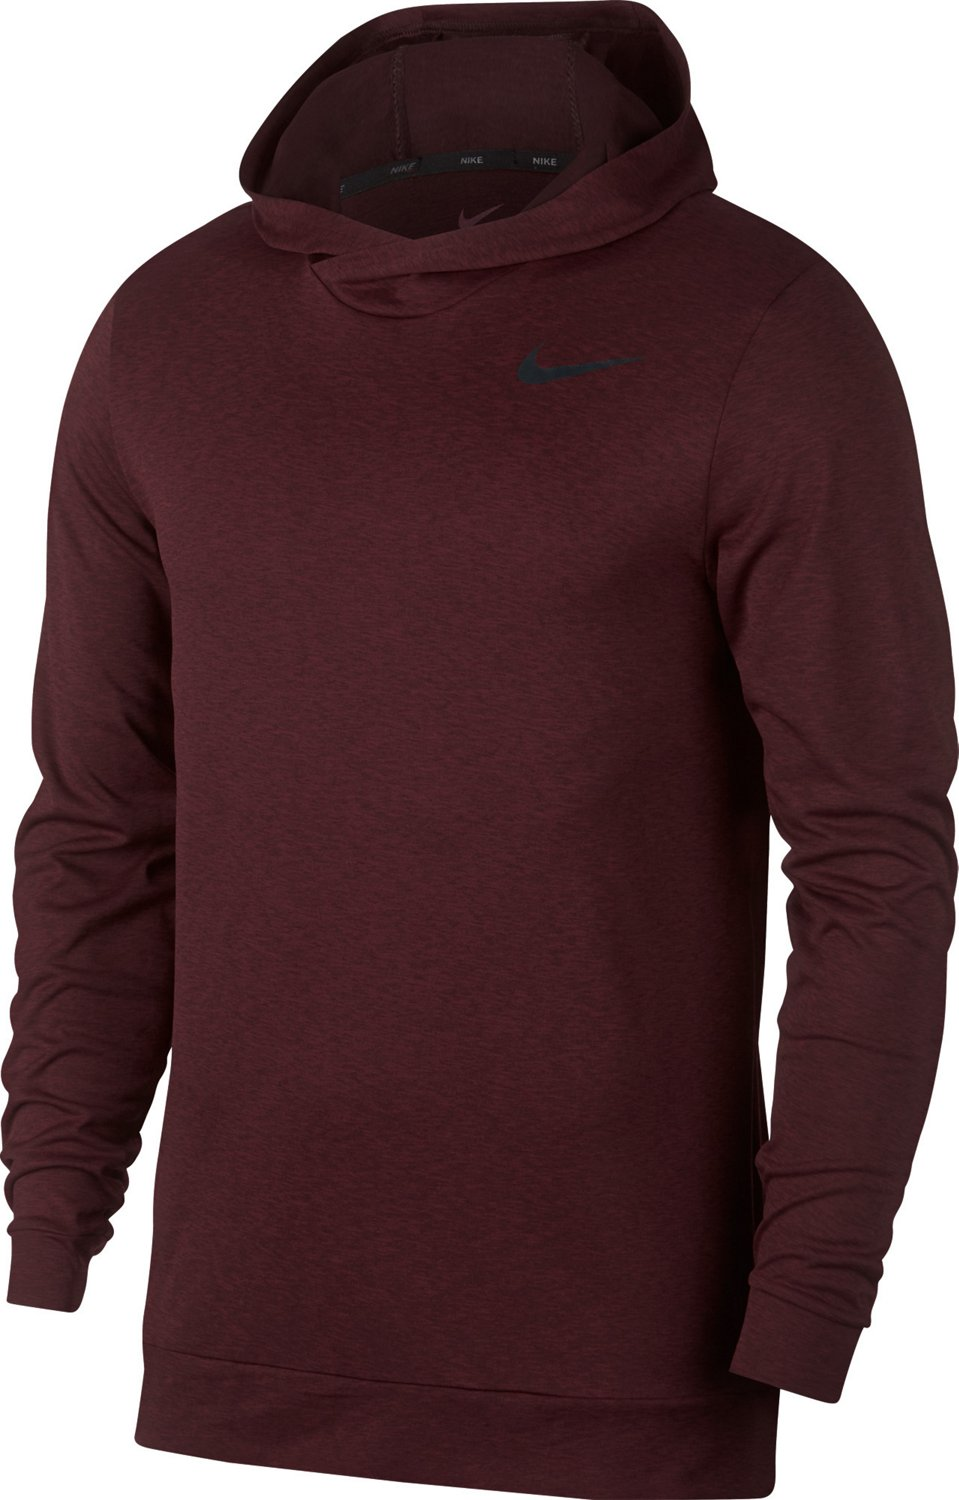 319690d47d8d59 Display product reviews for Nike Men s Breathe Training Hoodie